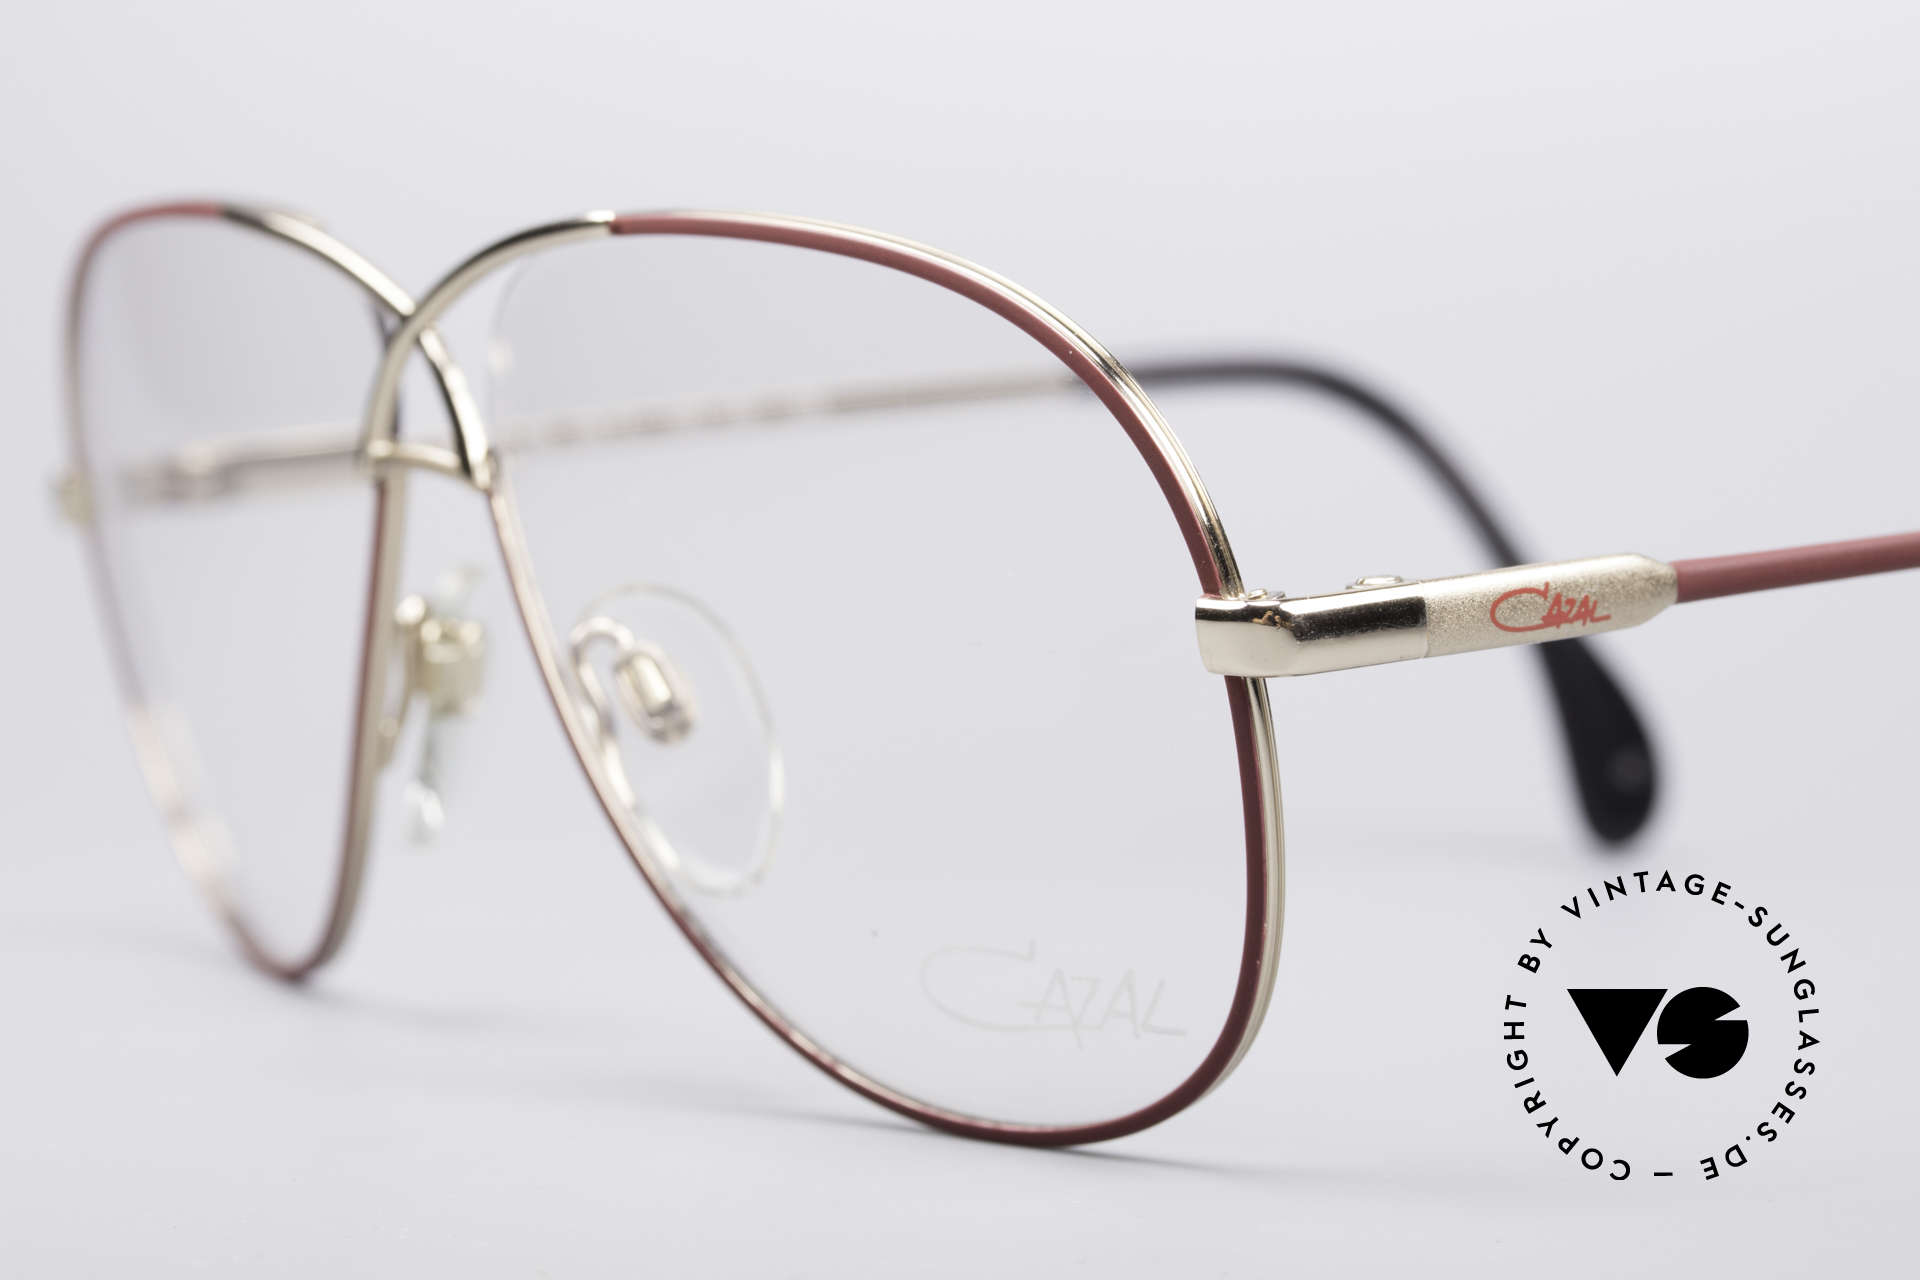 Cazal 728 Aviator Style Vintage Glasses, noble appearance, exquisite coloring and great fit, Made for Men and Women